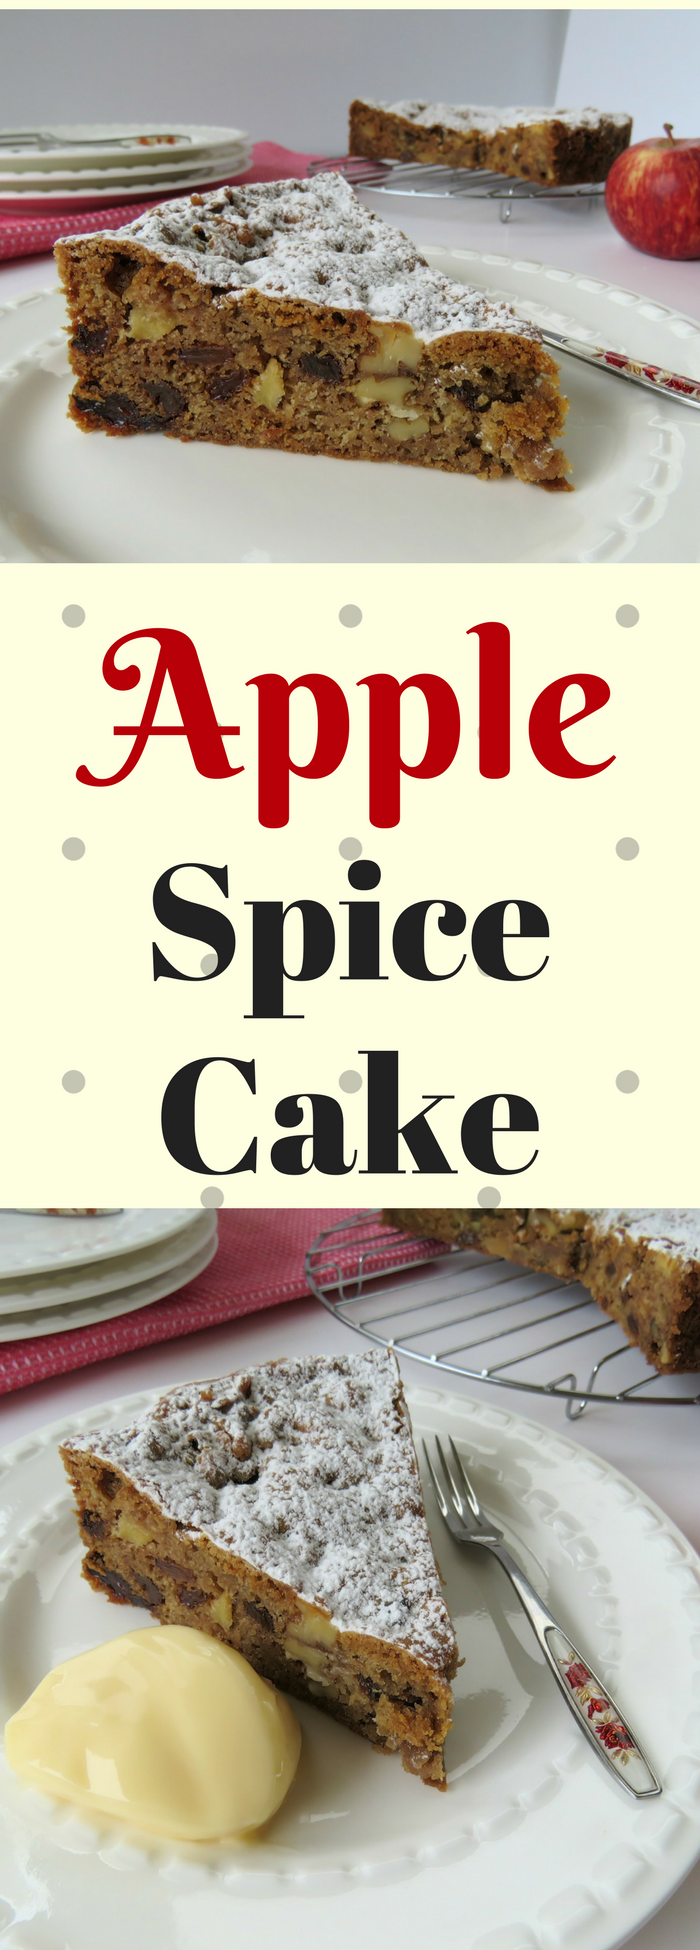 Just A Mum Apple Spice Cake Pinterest